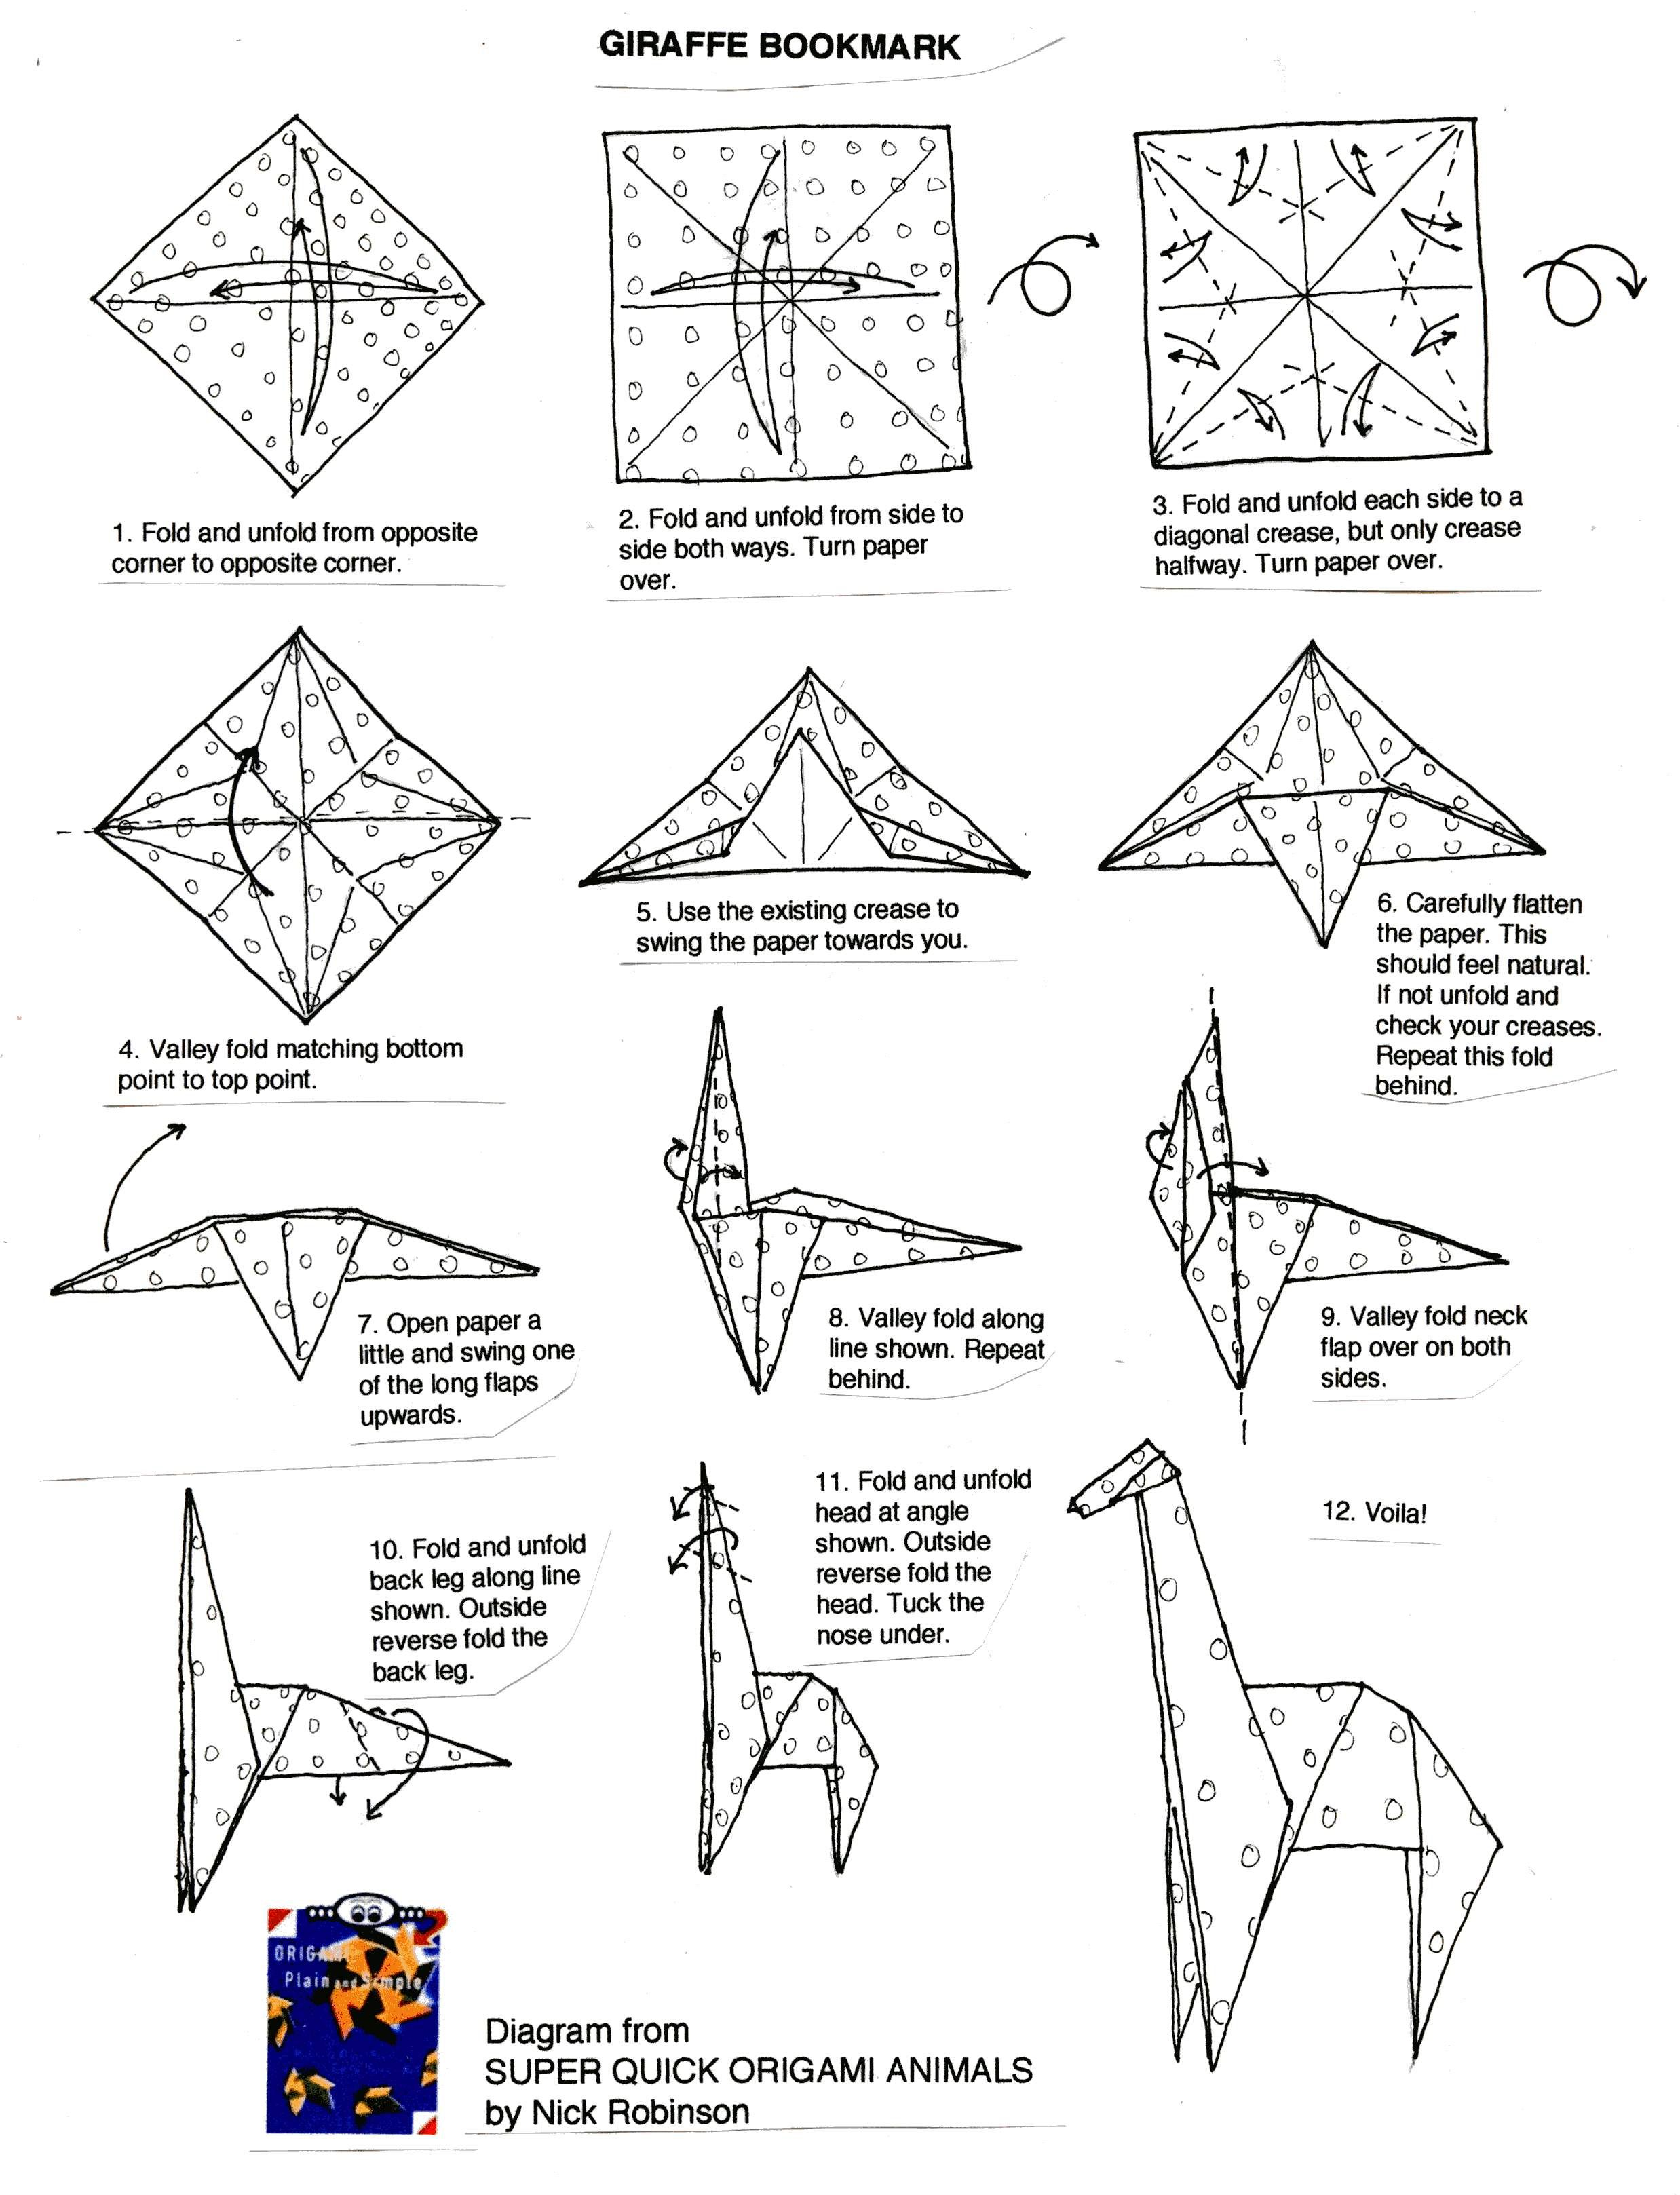 Origami diagrams complex embroidery origami wire data schema giraffe origami diagram embroidery origami data schema u2022 rh inboxme co intermediate origami diagrams complex origami flower diagram mightylinksfo